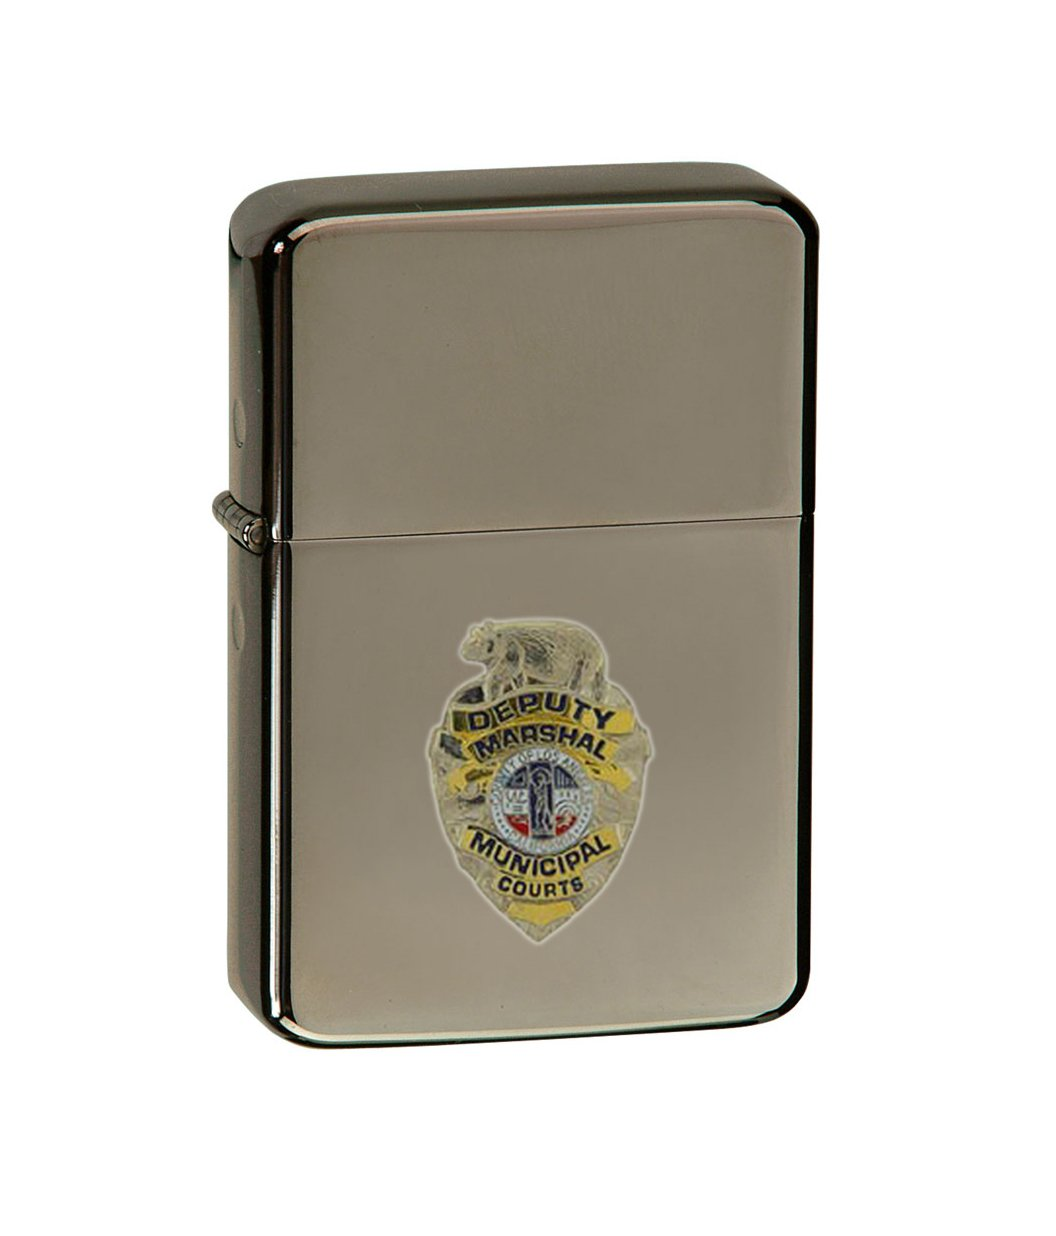 Vector KGM Thunderbird Emblem Sparkle Black Lighter - Law Enforcement Pin Collector Series - Police Badge Pins - Los Angeles, CA Deputy Marshall vector zone nickel matte single torch lighter